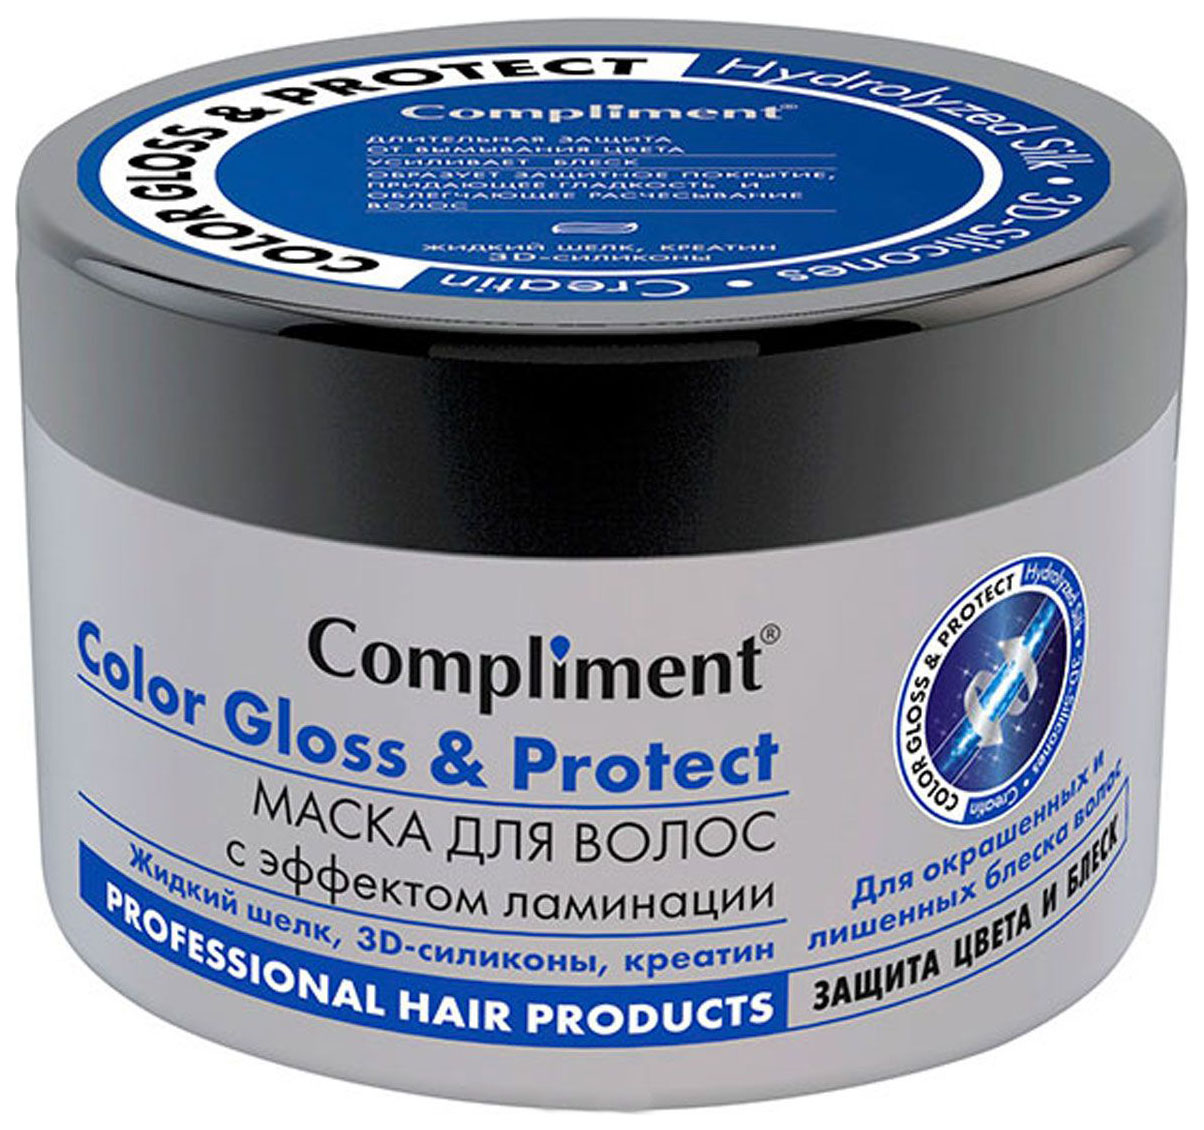 COMPLIMENT COLOR GLOSS #AND# PROTECT